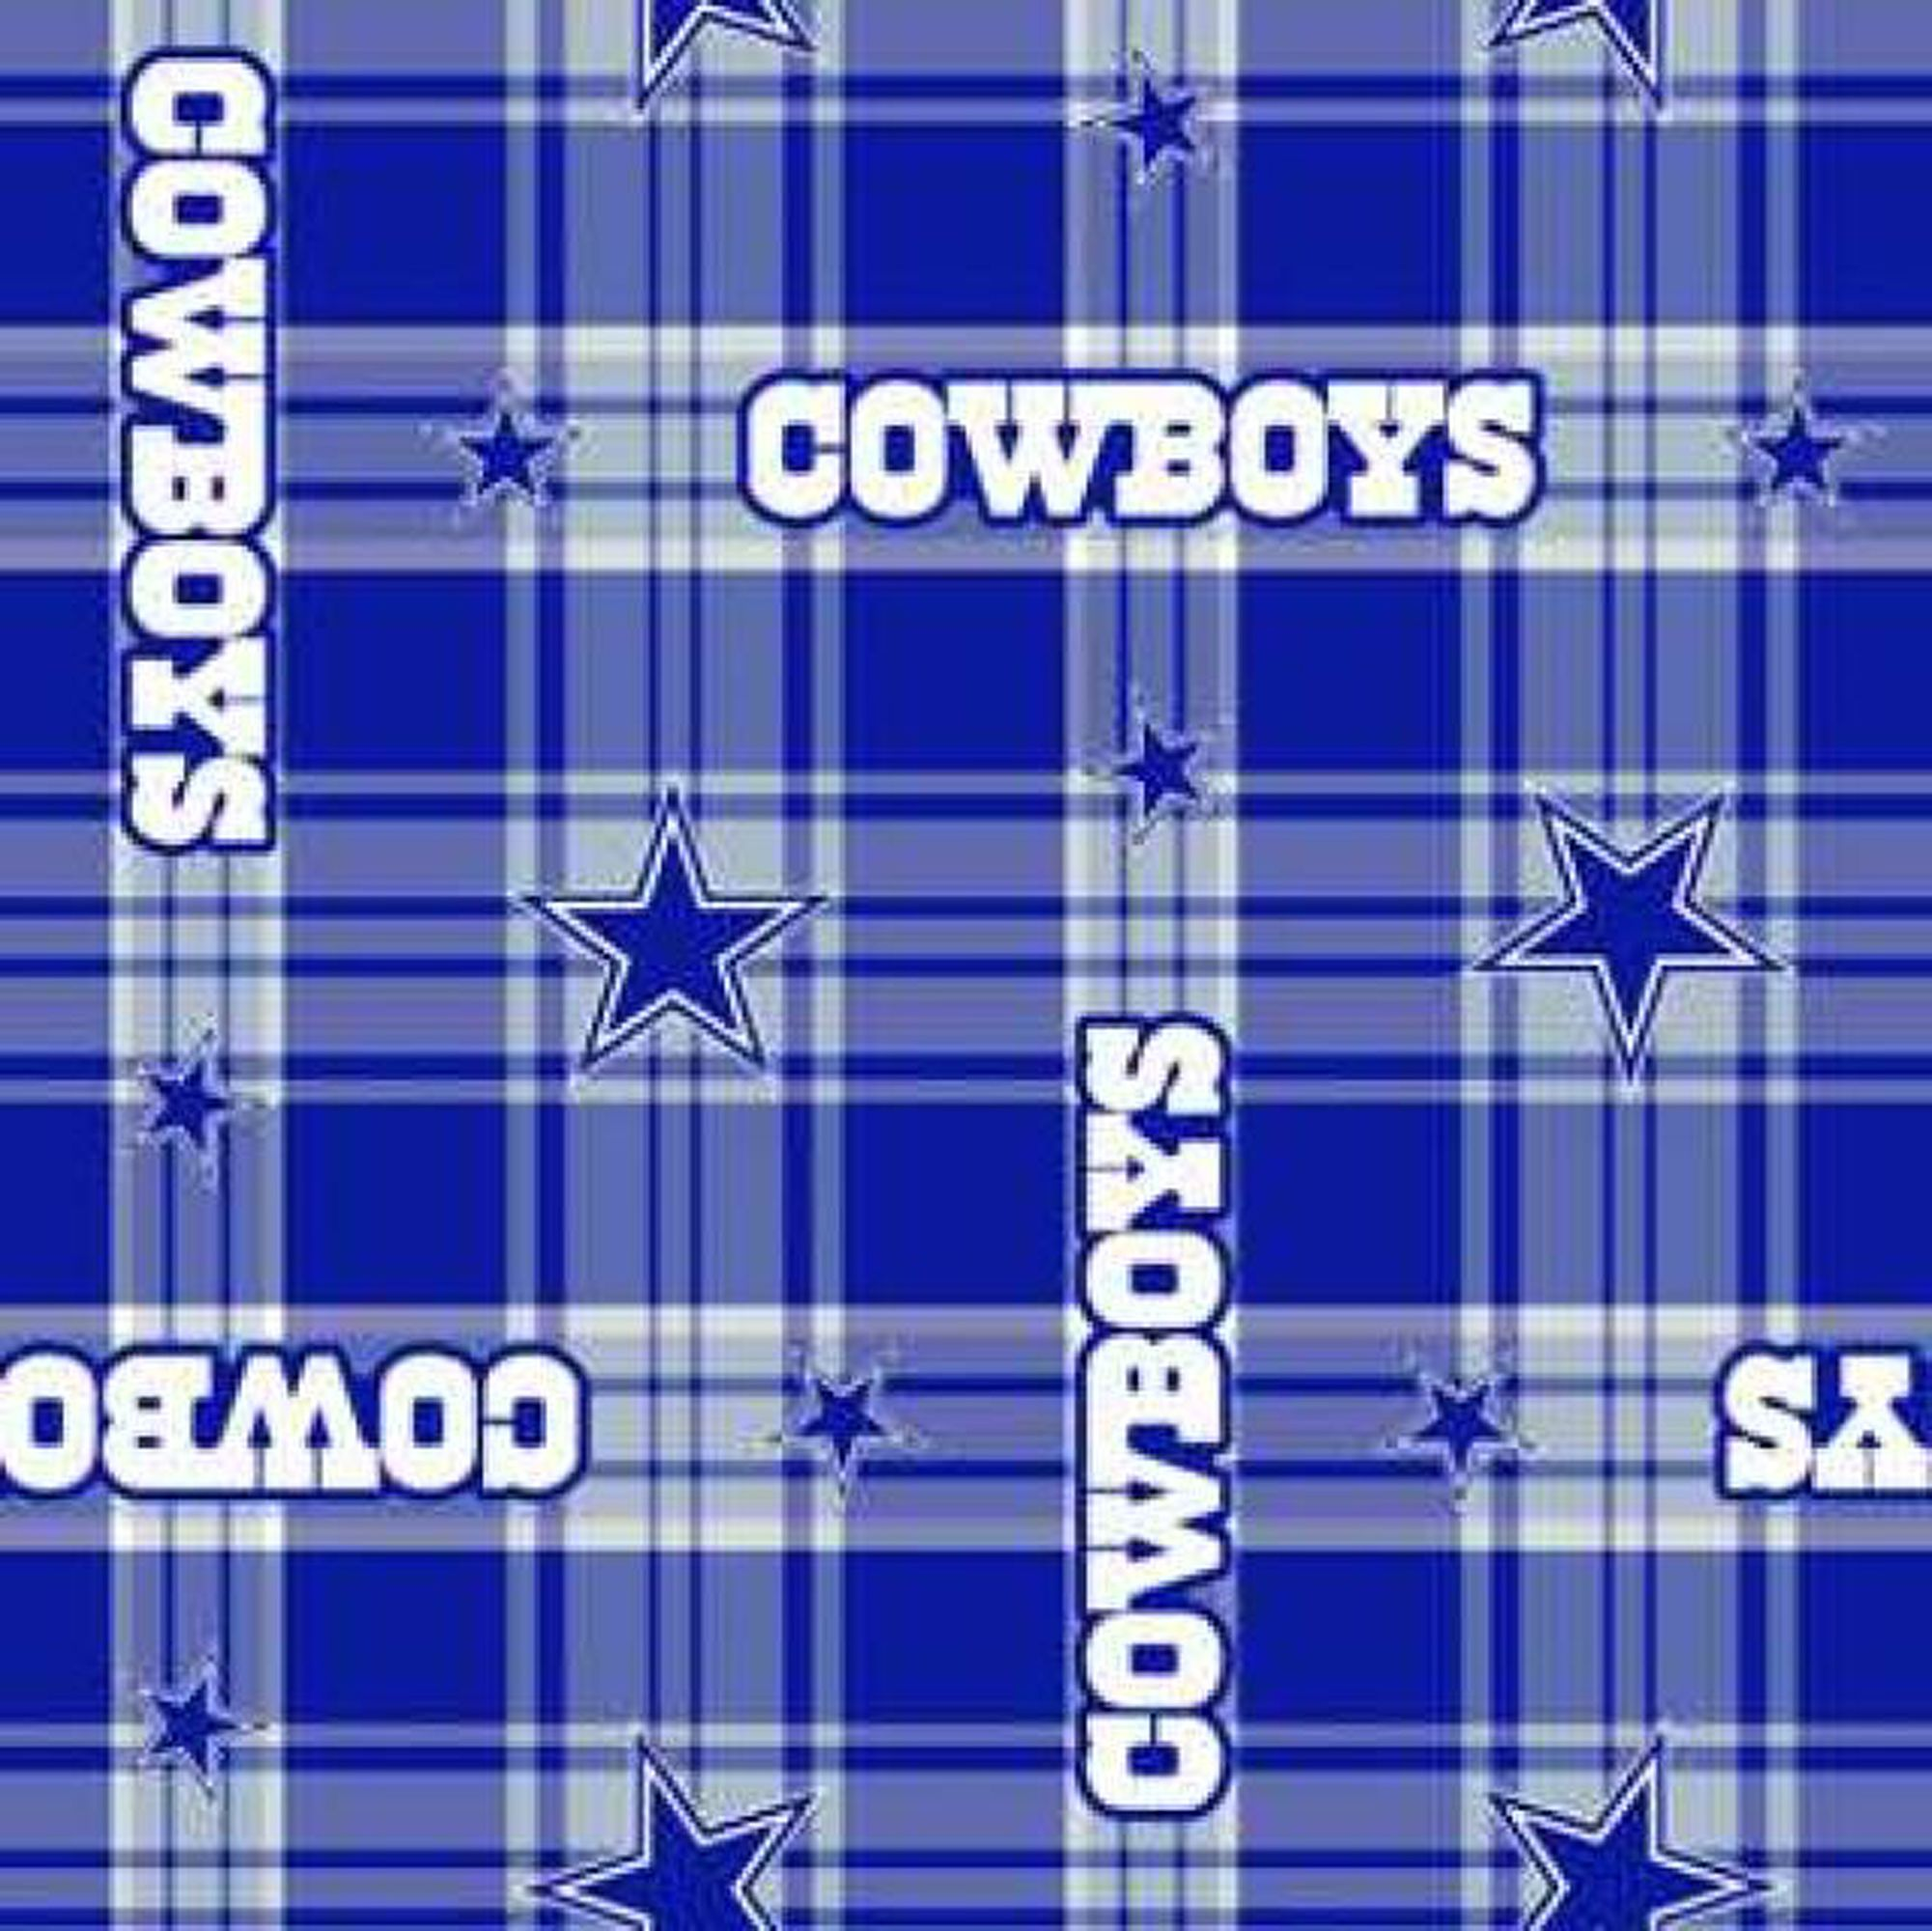 Style Nfl Dal 6391 Click Image To Zoom 13 95 Per Yard Style Nfl Dal 6391 In Stock 23 Yards In 2020 With Images Dallas Cowboys Football Cowboys Football Dallas Cowboys